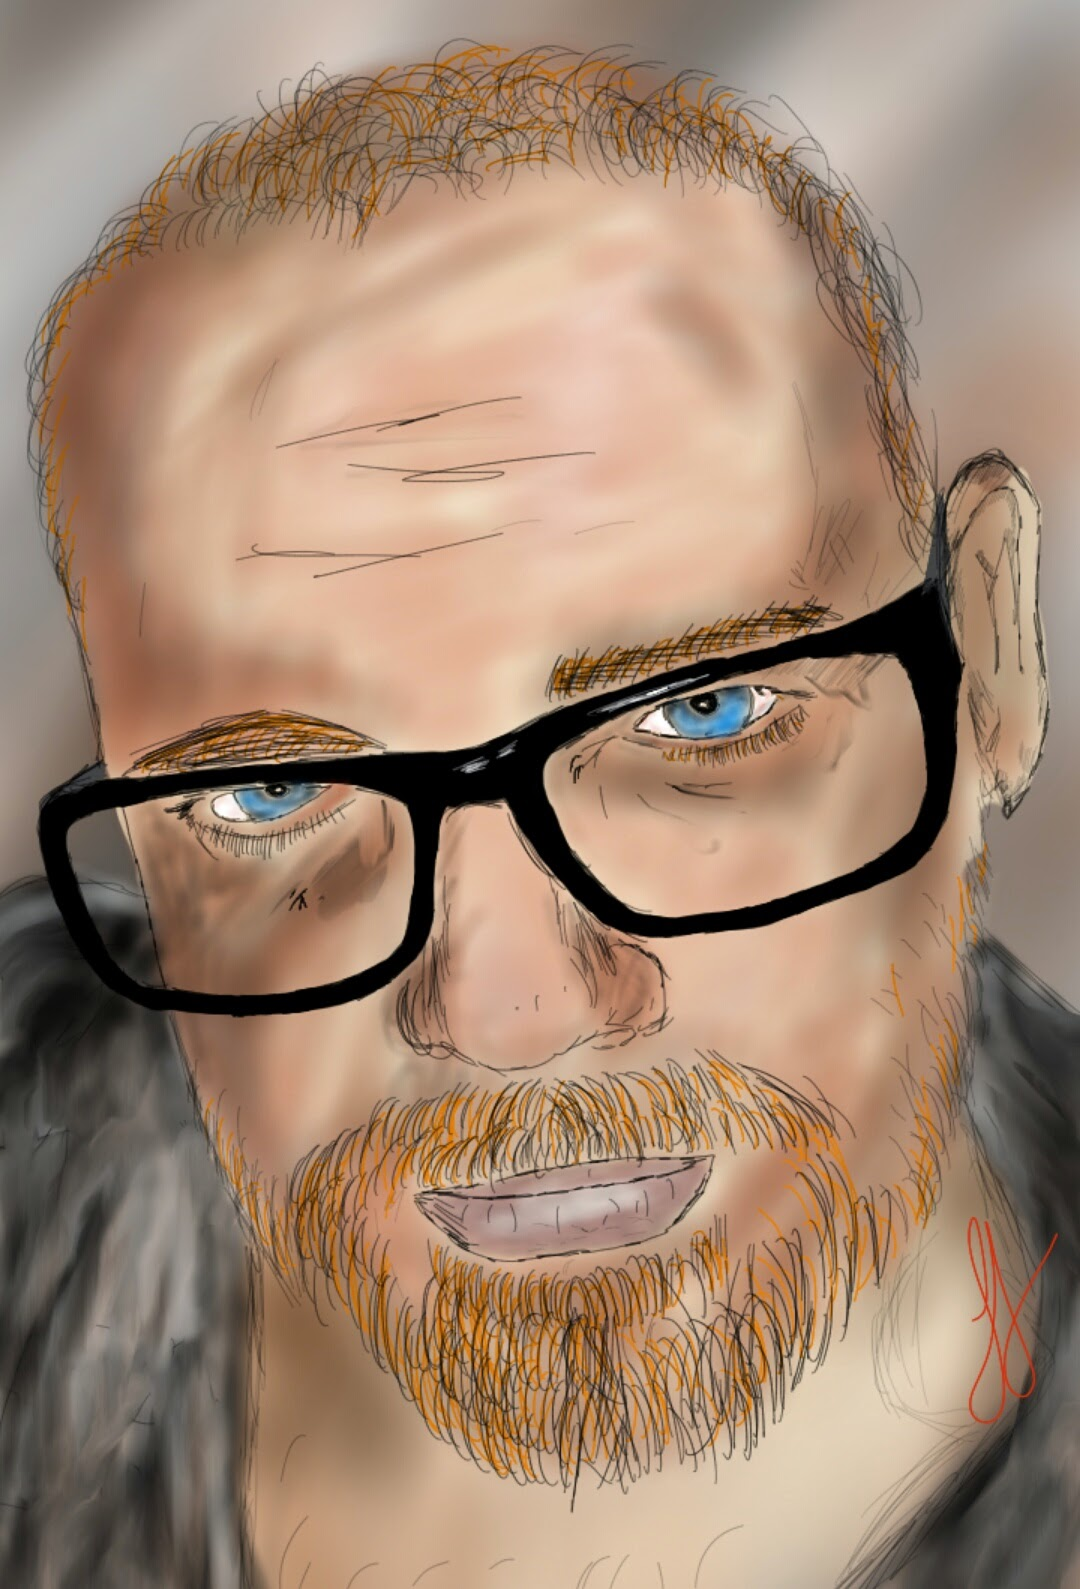 A Digital Art Selfie